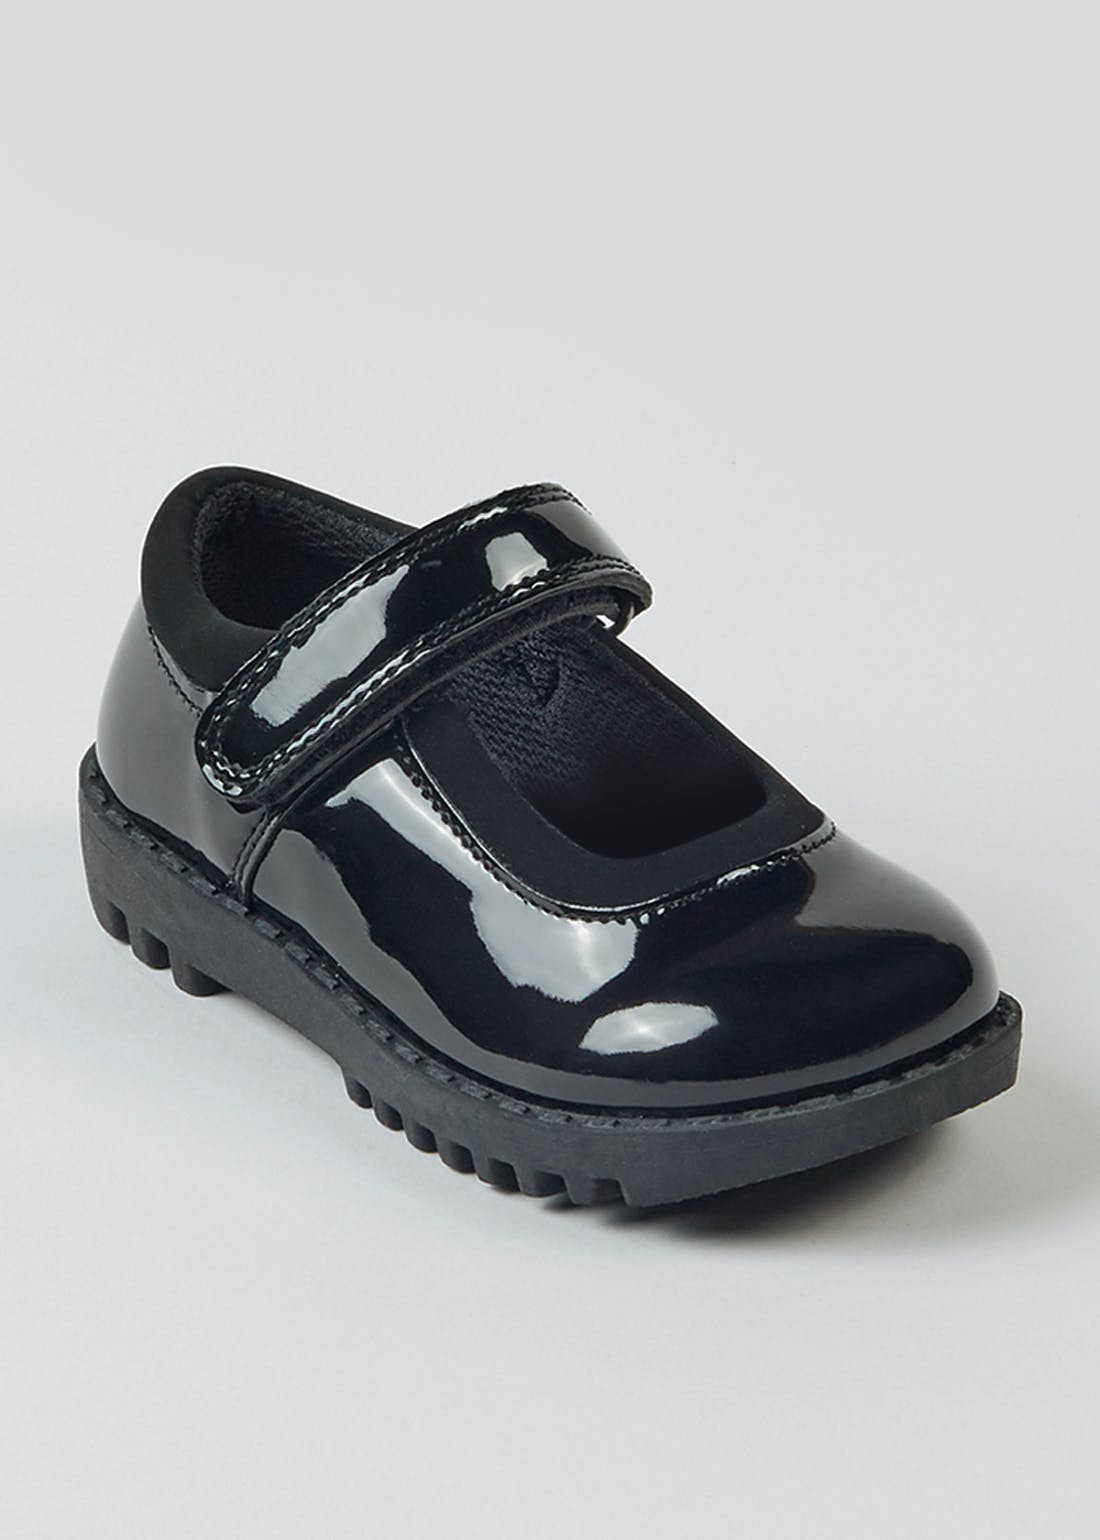 Girls Black Patent School Shoes (Younger 6-12)